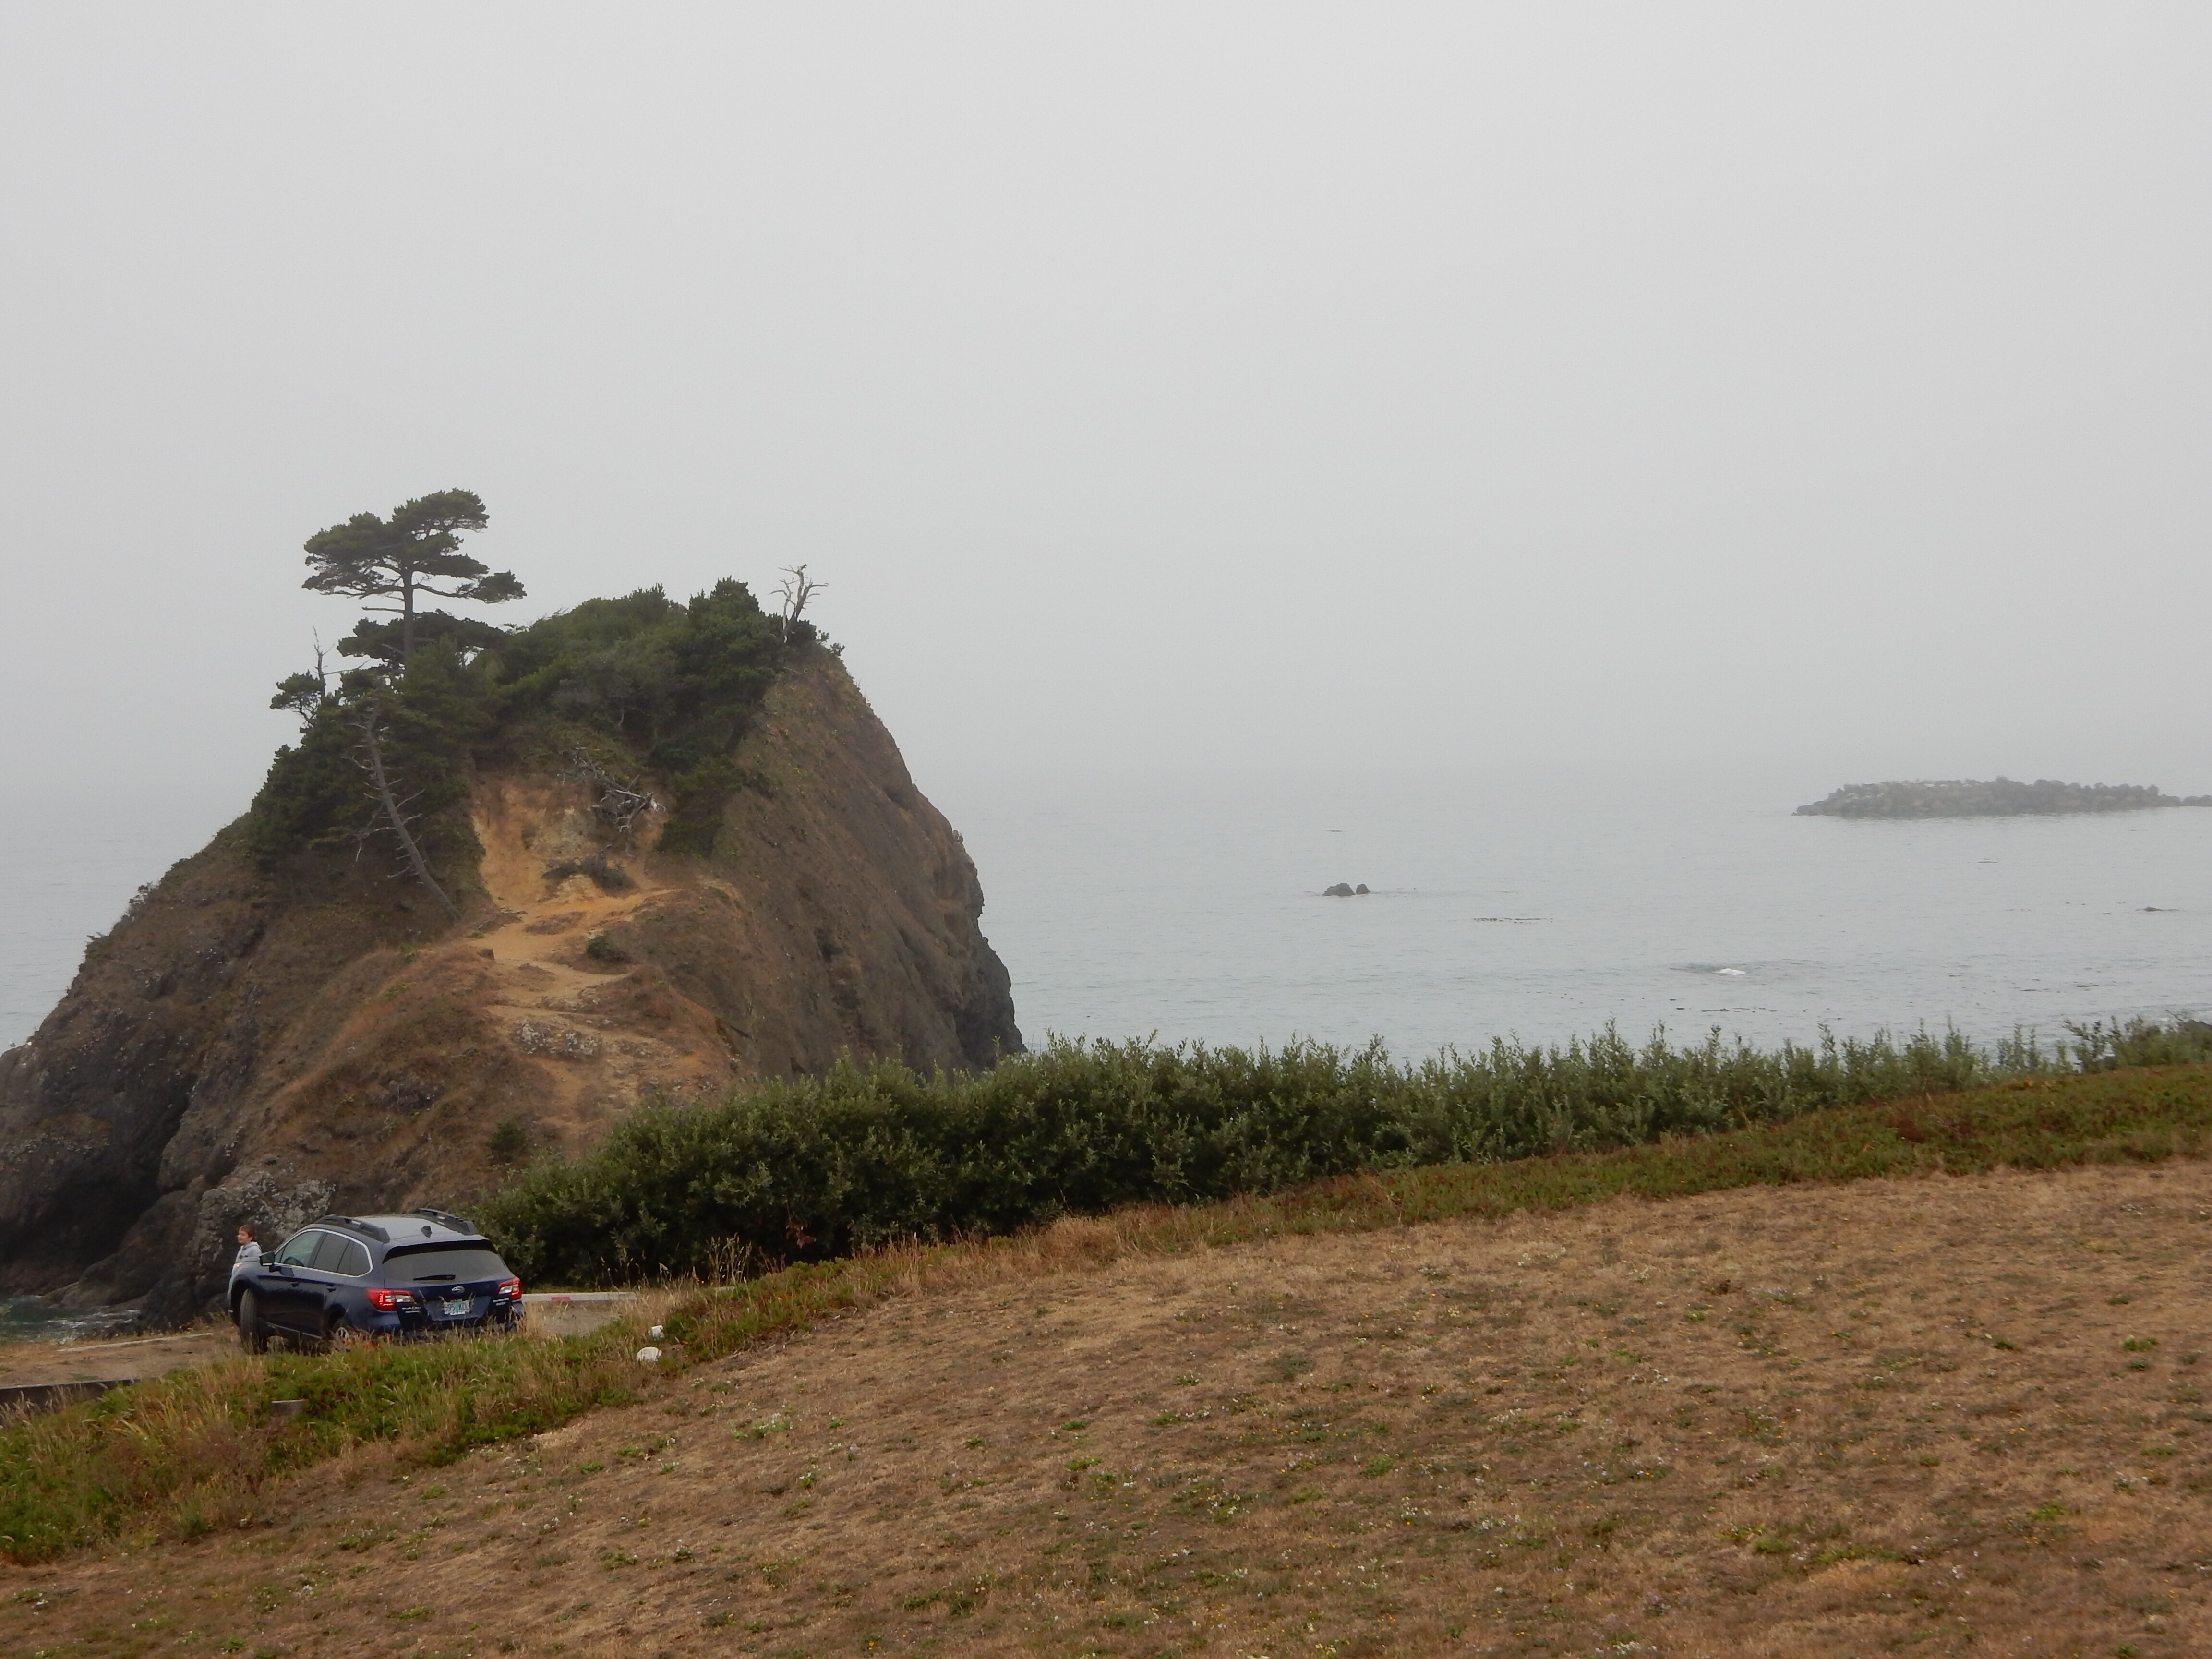 A view of Battle Rock from the overlook at Port Orford.